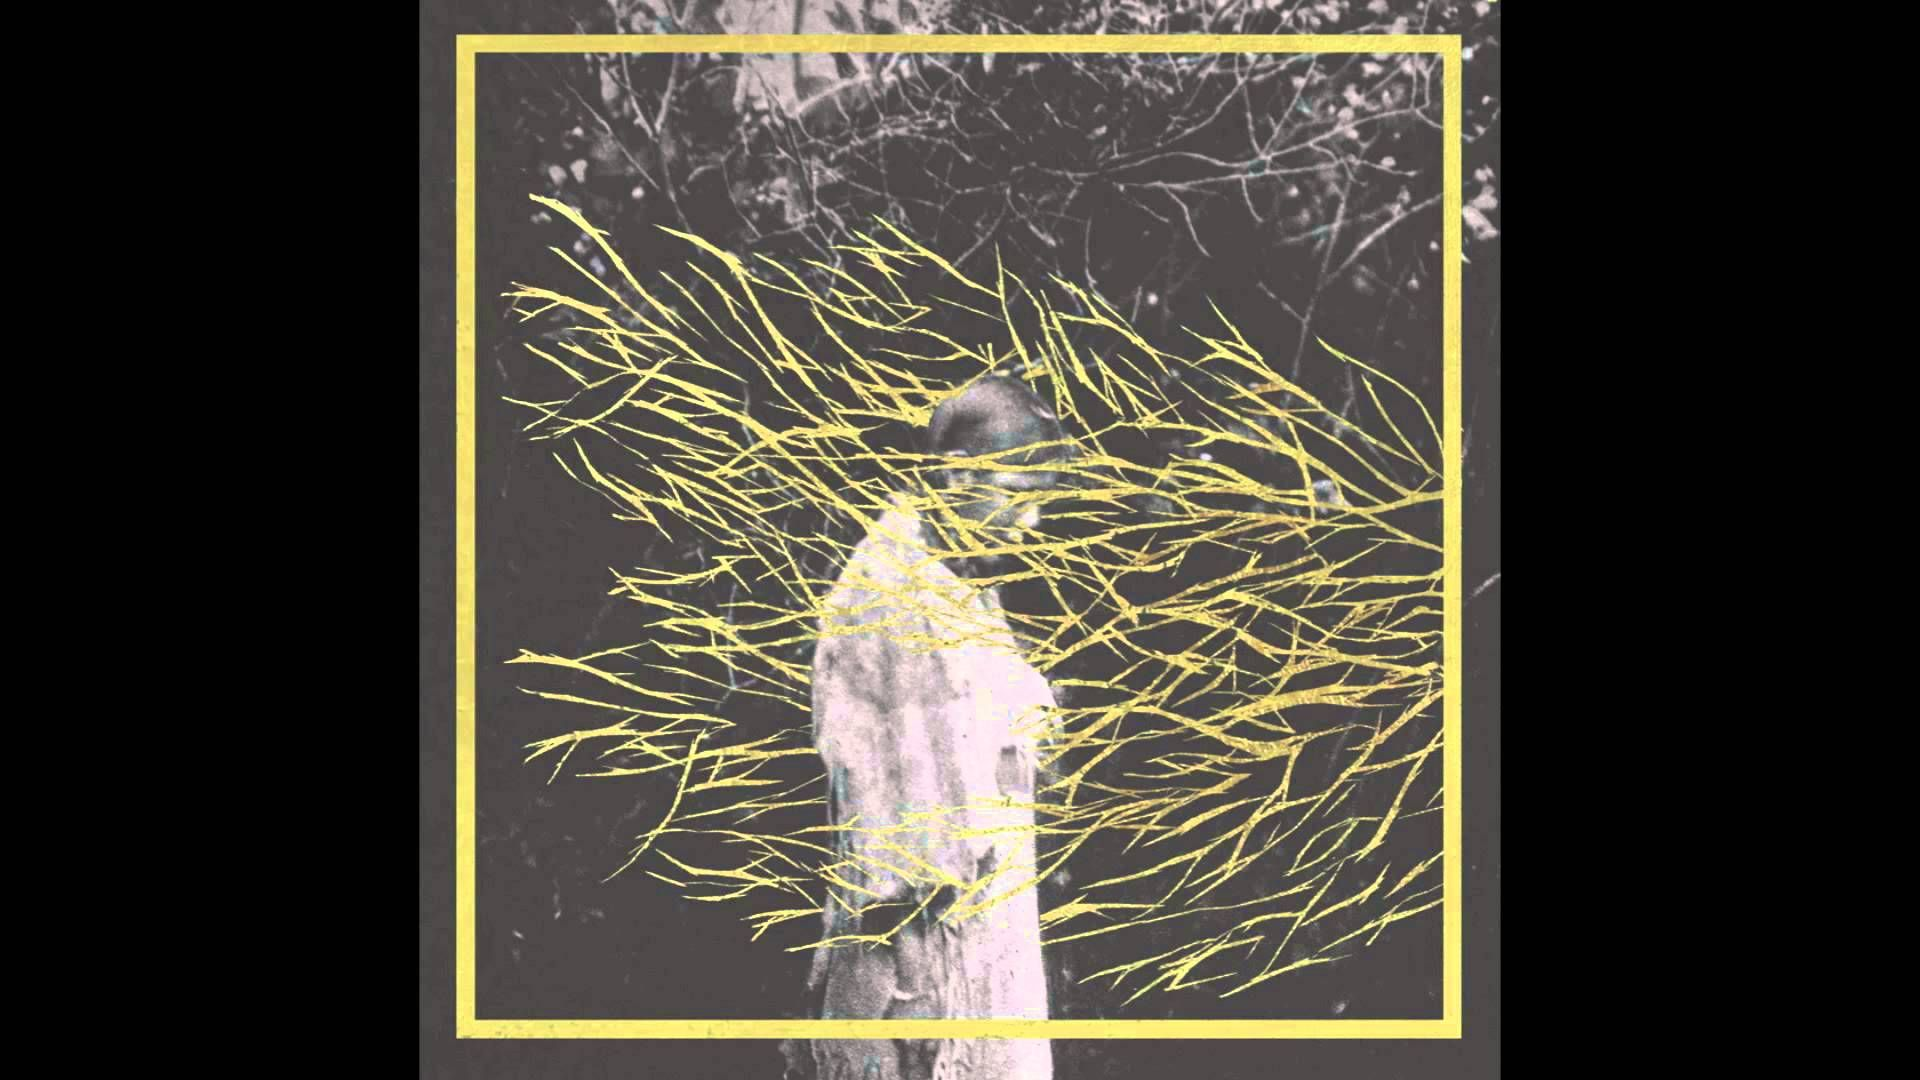 Forest Swords Engravings Full Album 2013 Electronic Music Music Memories Kinds Of Music